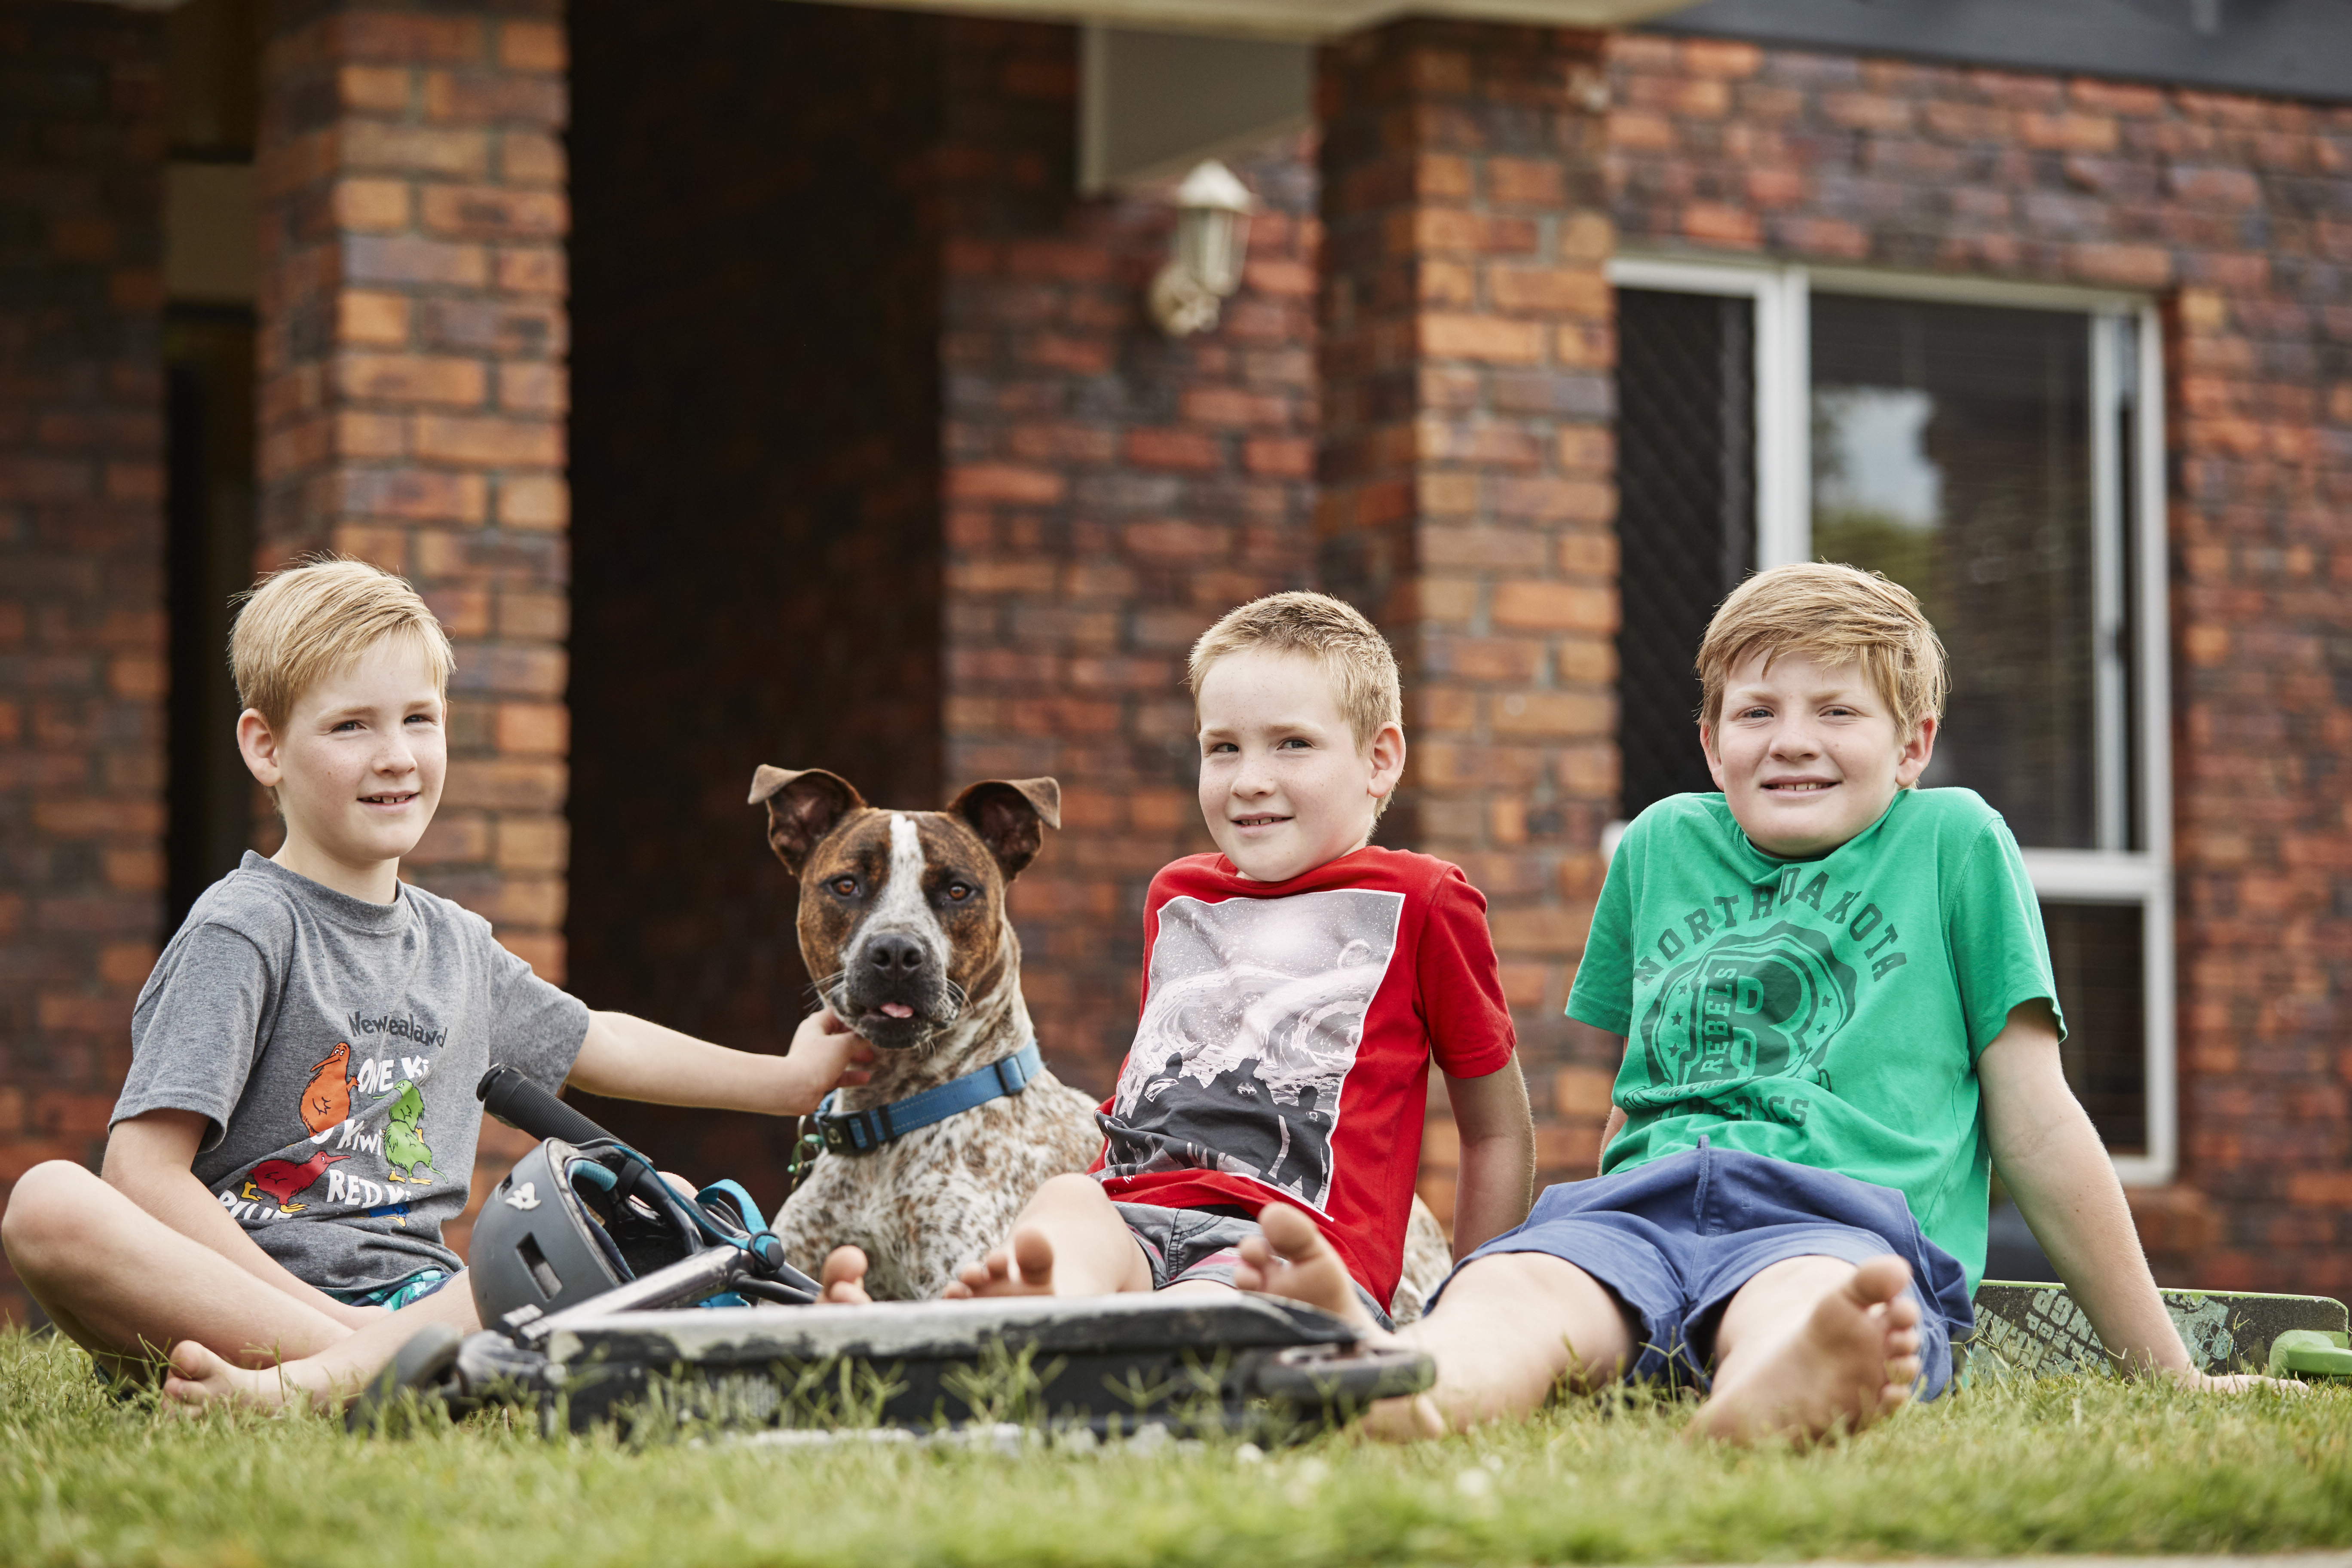 Three children sitting on the grass with their dog out the front of their home